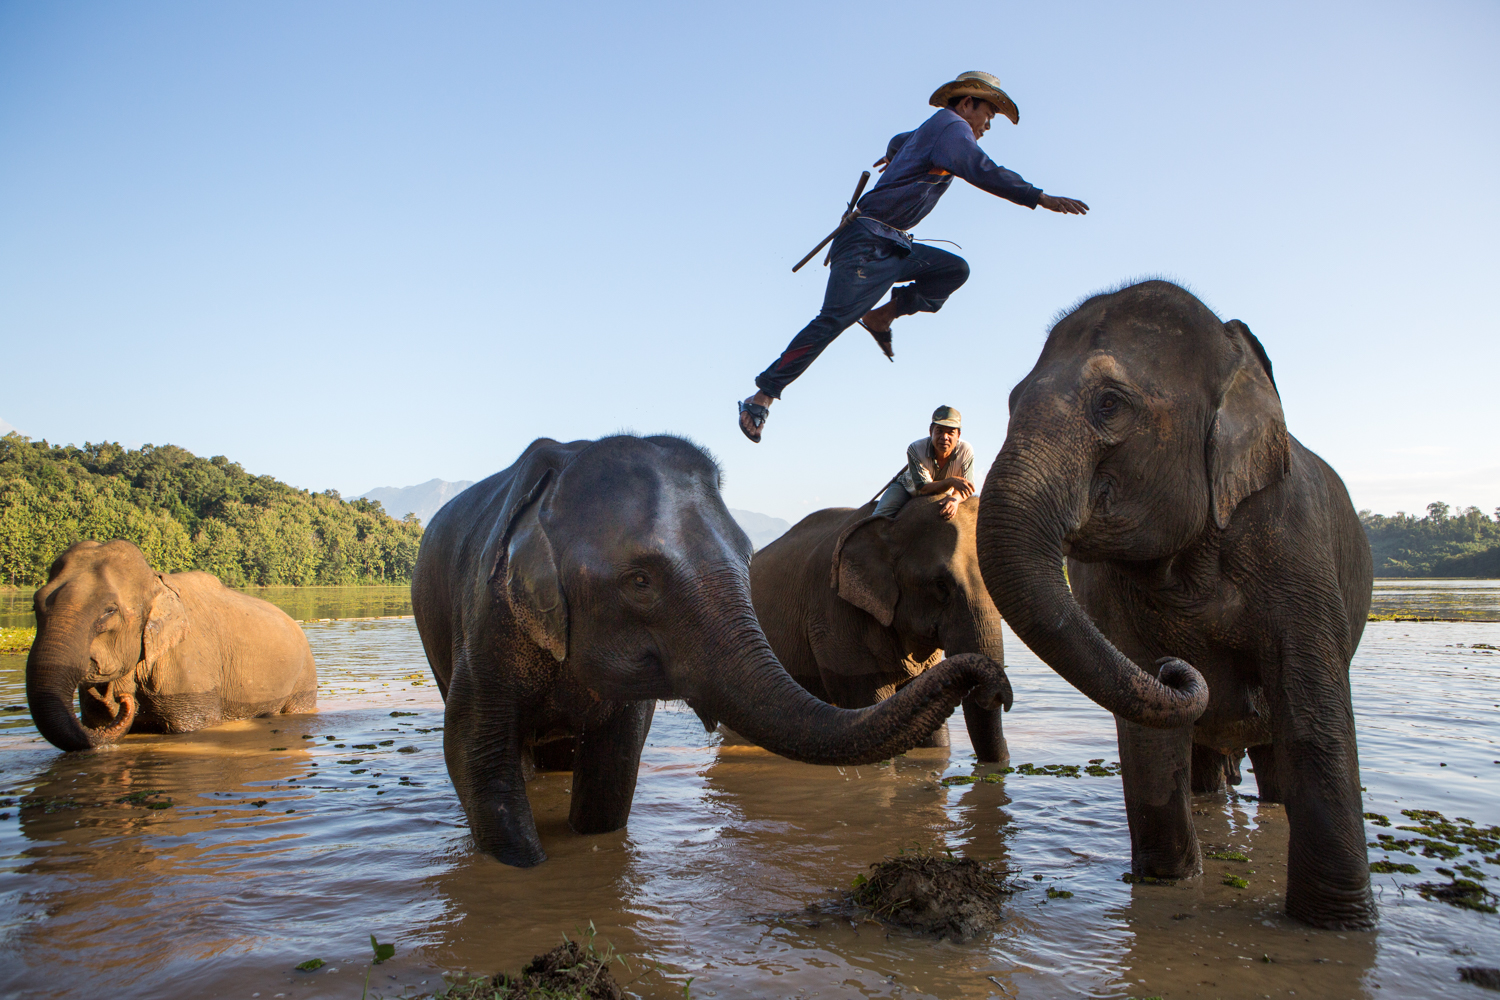 At the Elephant Conservation Center in Laos, a mahout (elephant trainer) jumps between two elephants.